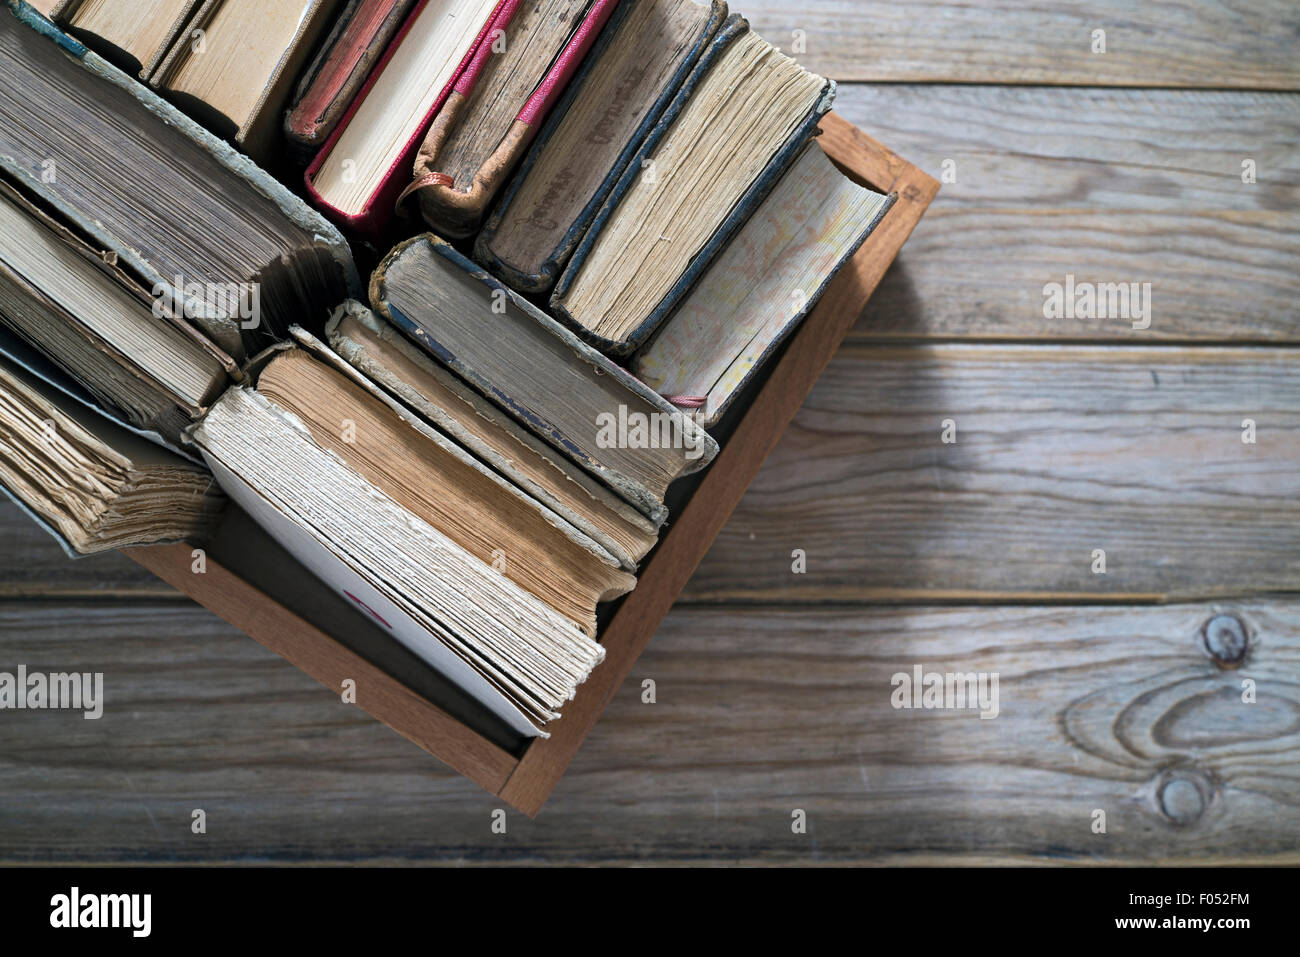 Old books in the wooden box - Stock Image